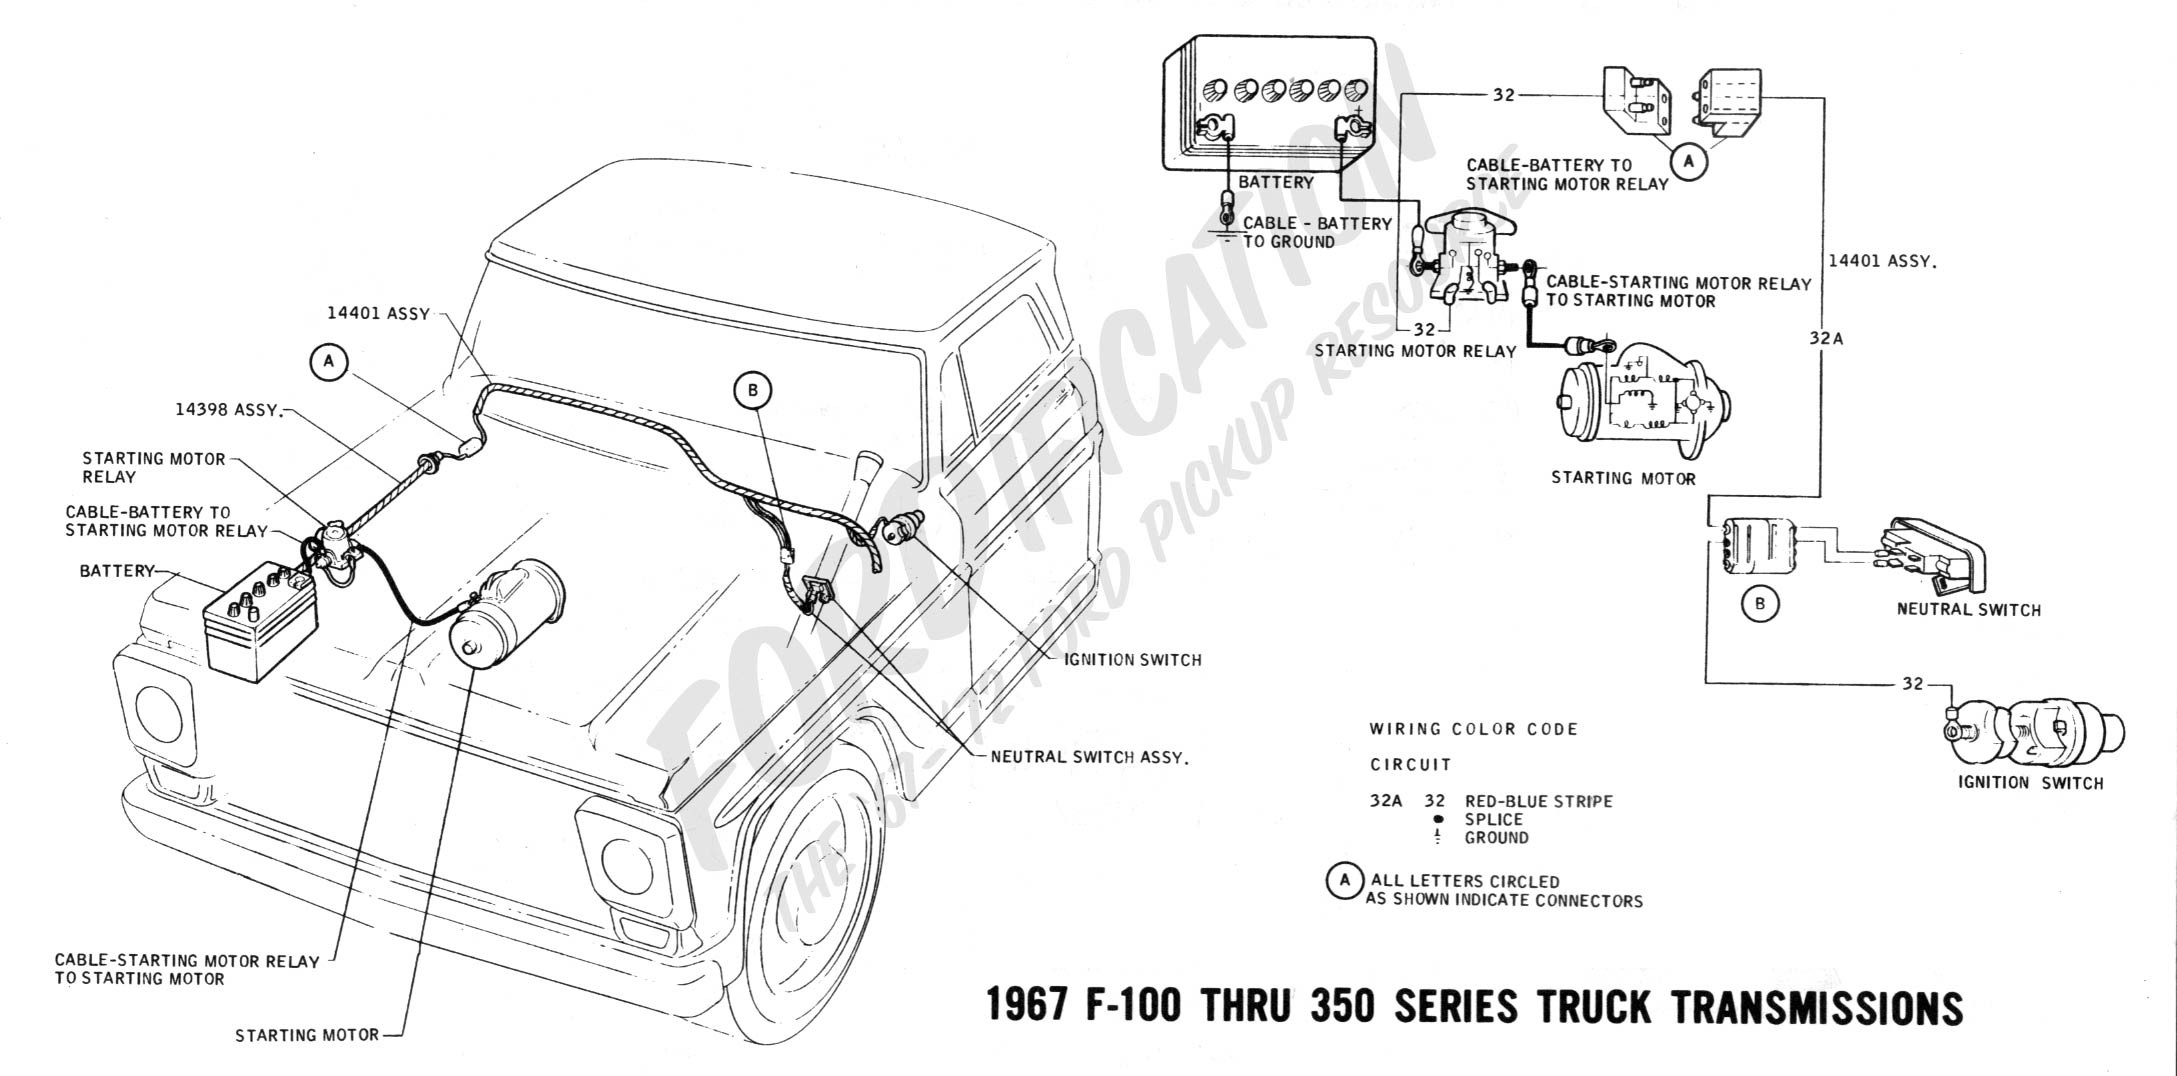 Ford F250 Engine Diagram ford Truck Technical Drawings and Schematics Section H Wiring Of Ford F250 Engine Diagram